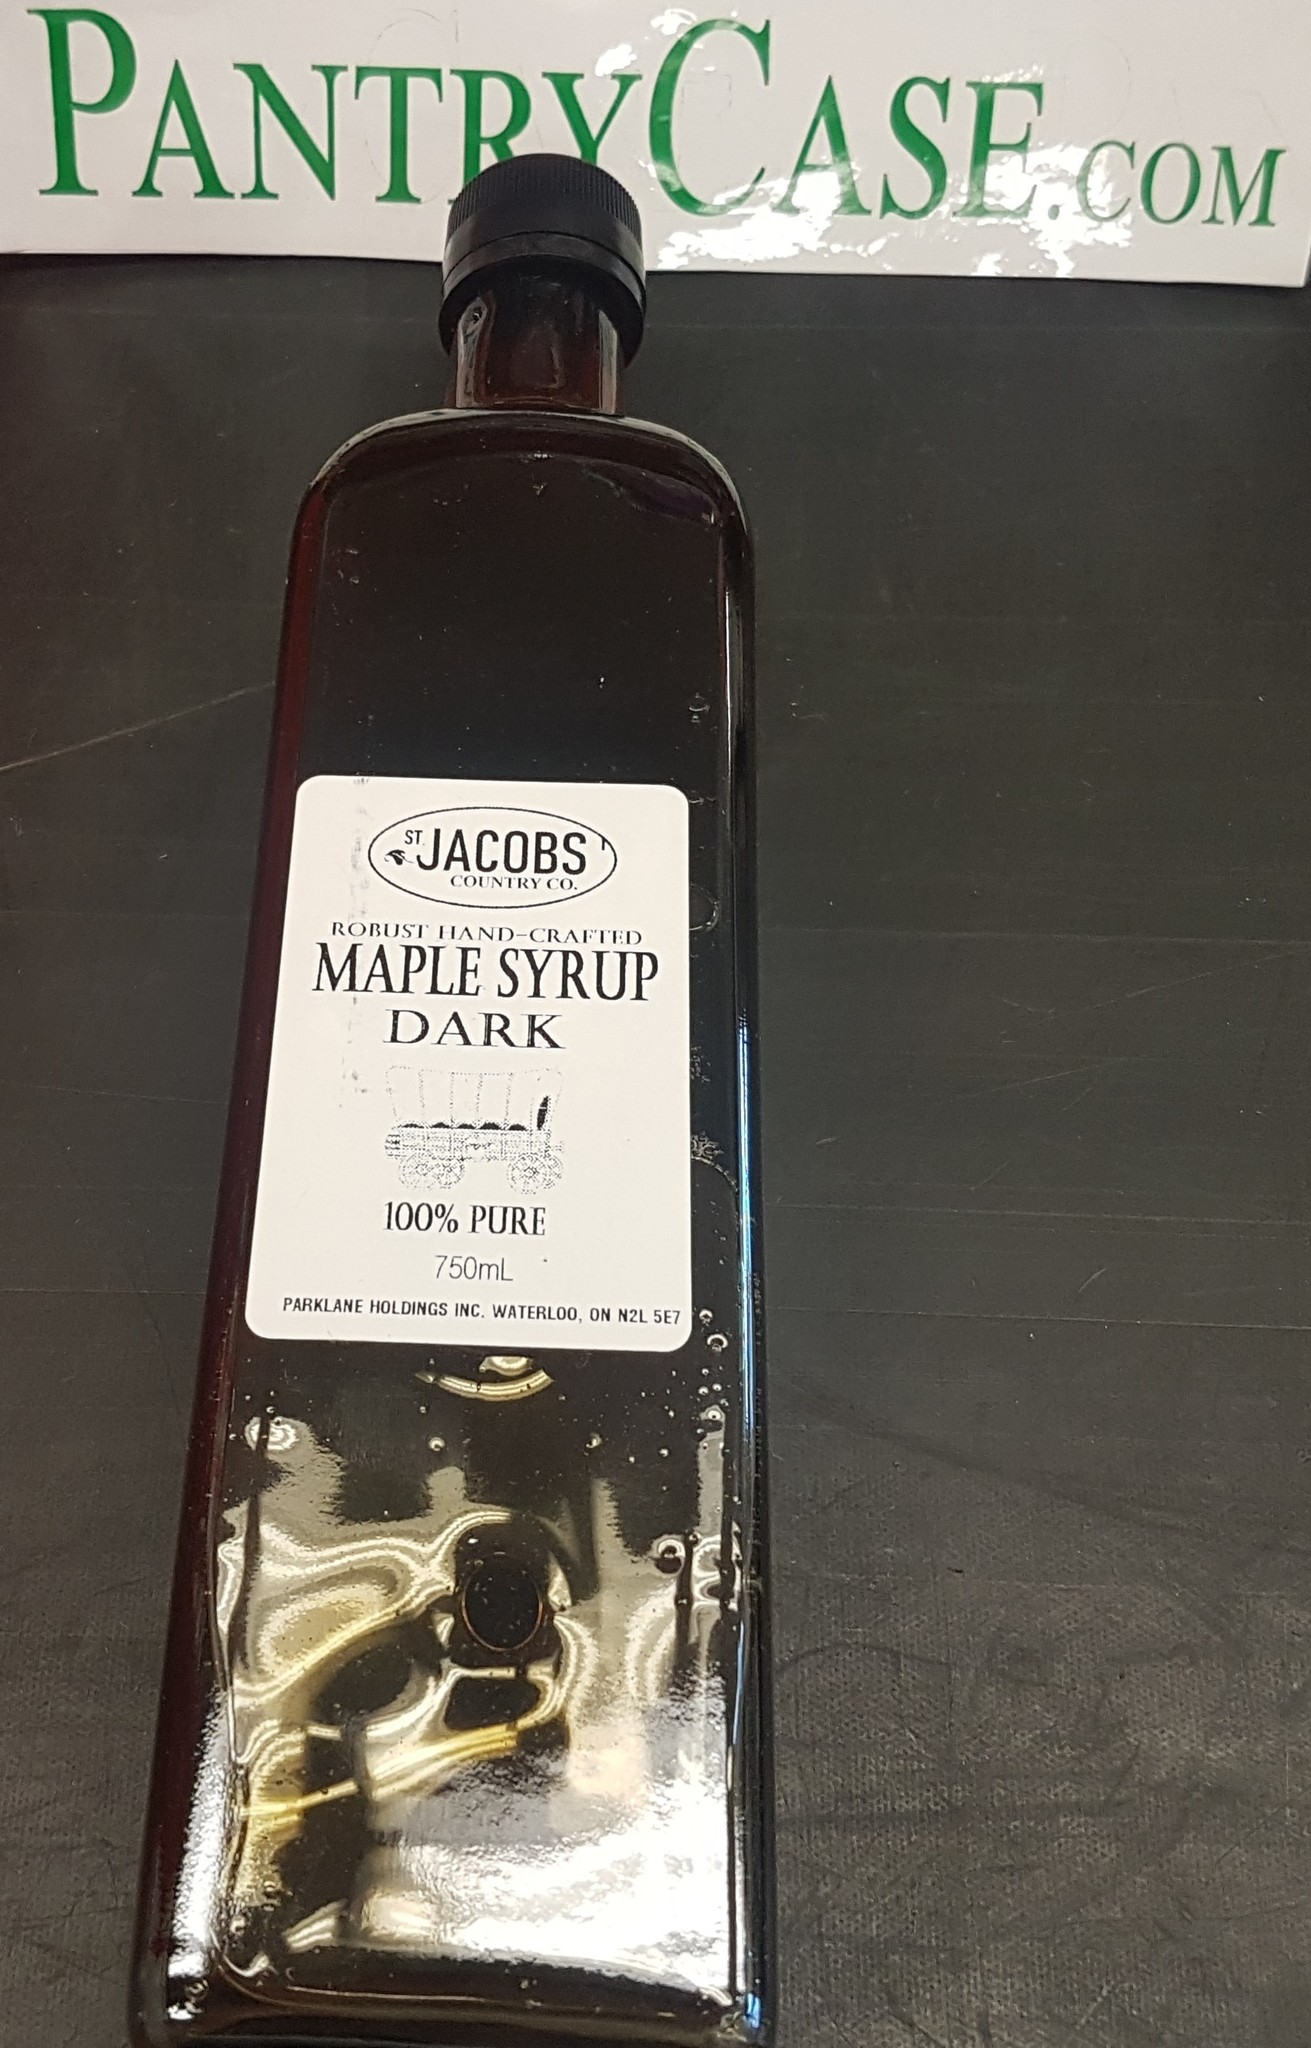 St Jacobs Country St Jacobs Dark Maple Syrup 750ml